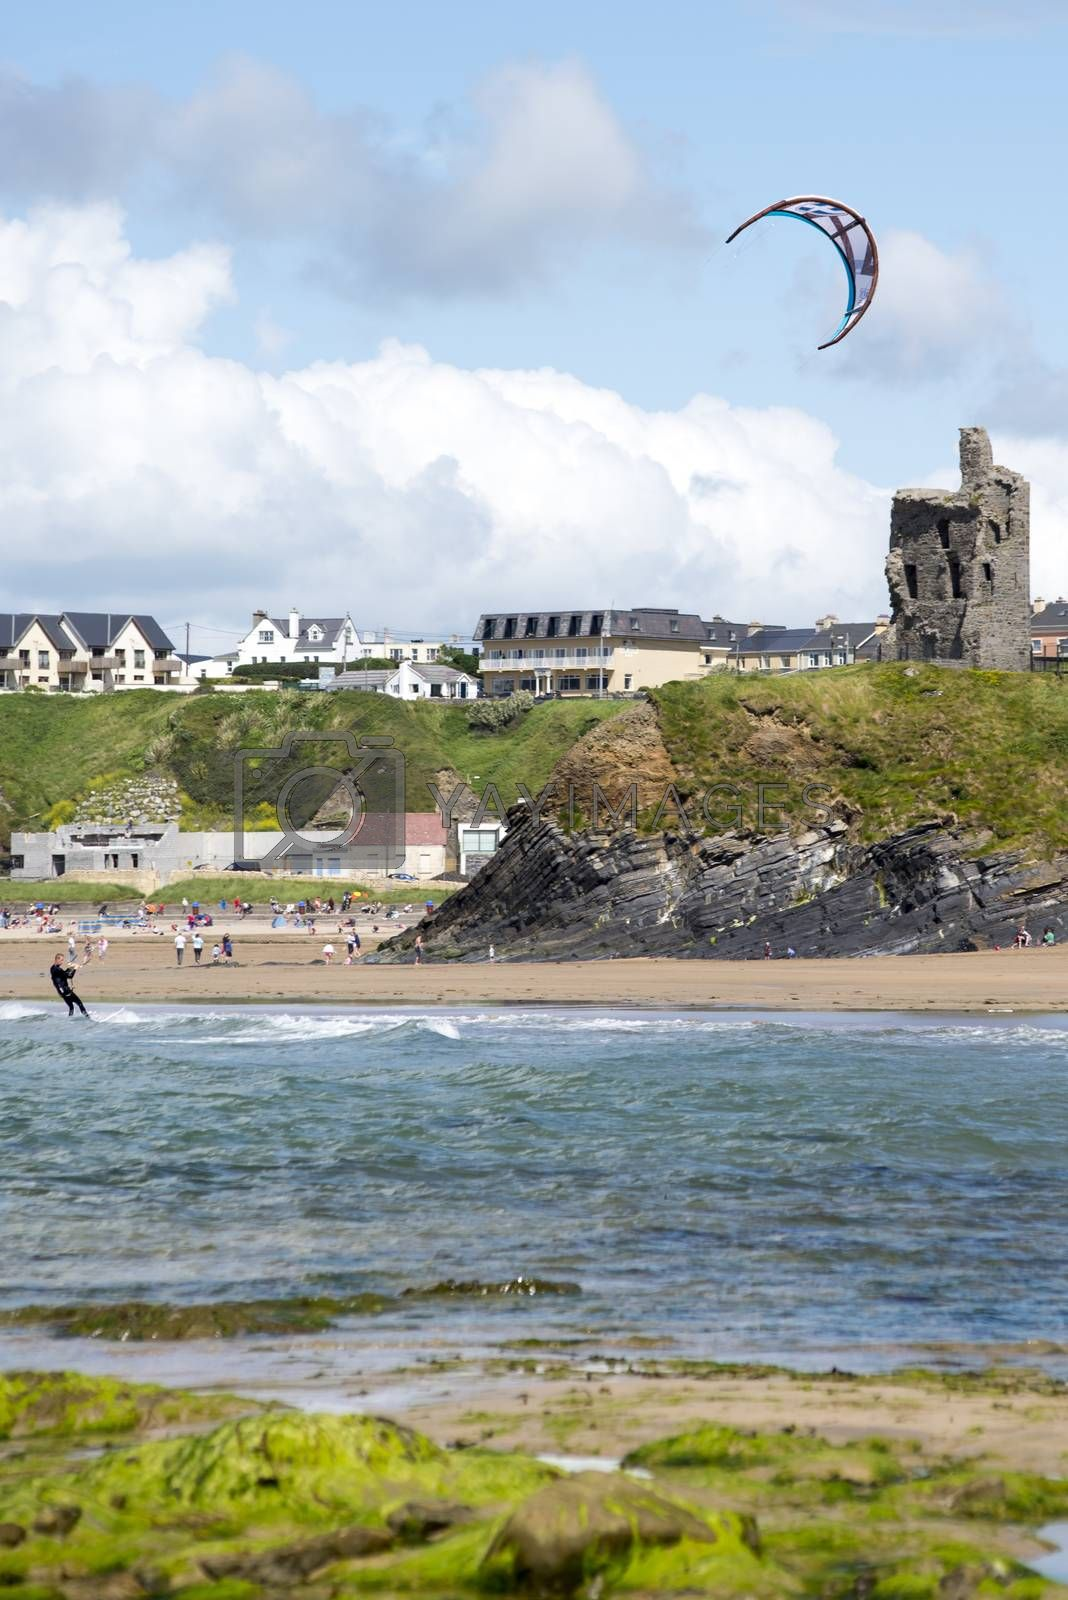 lone kite surfer playing the waves at ballybunion beach on the wild atlantic way